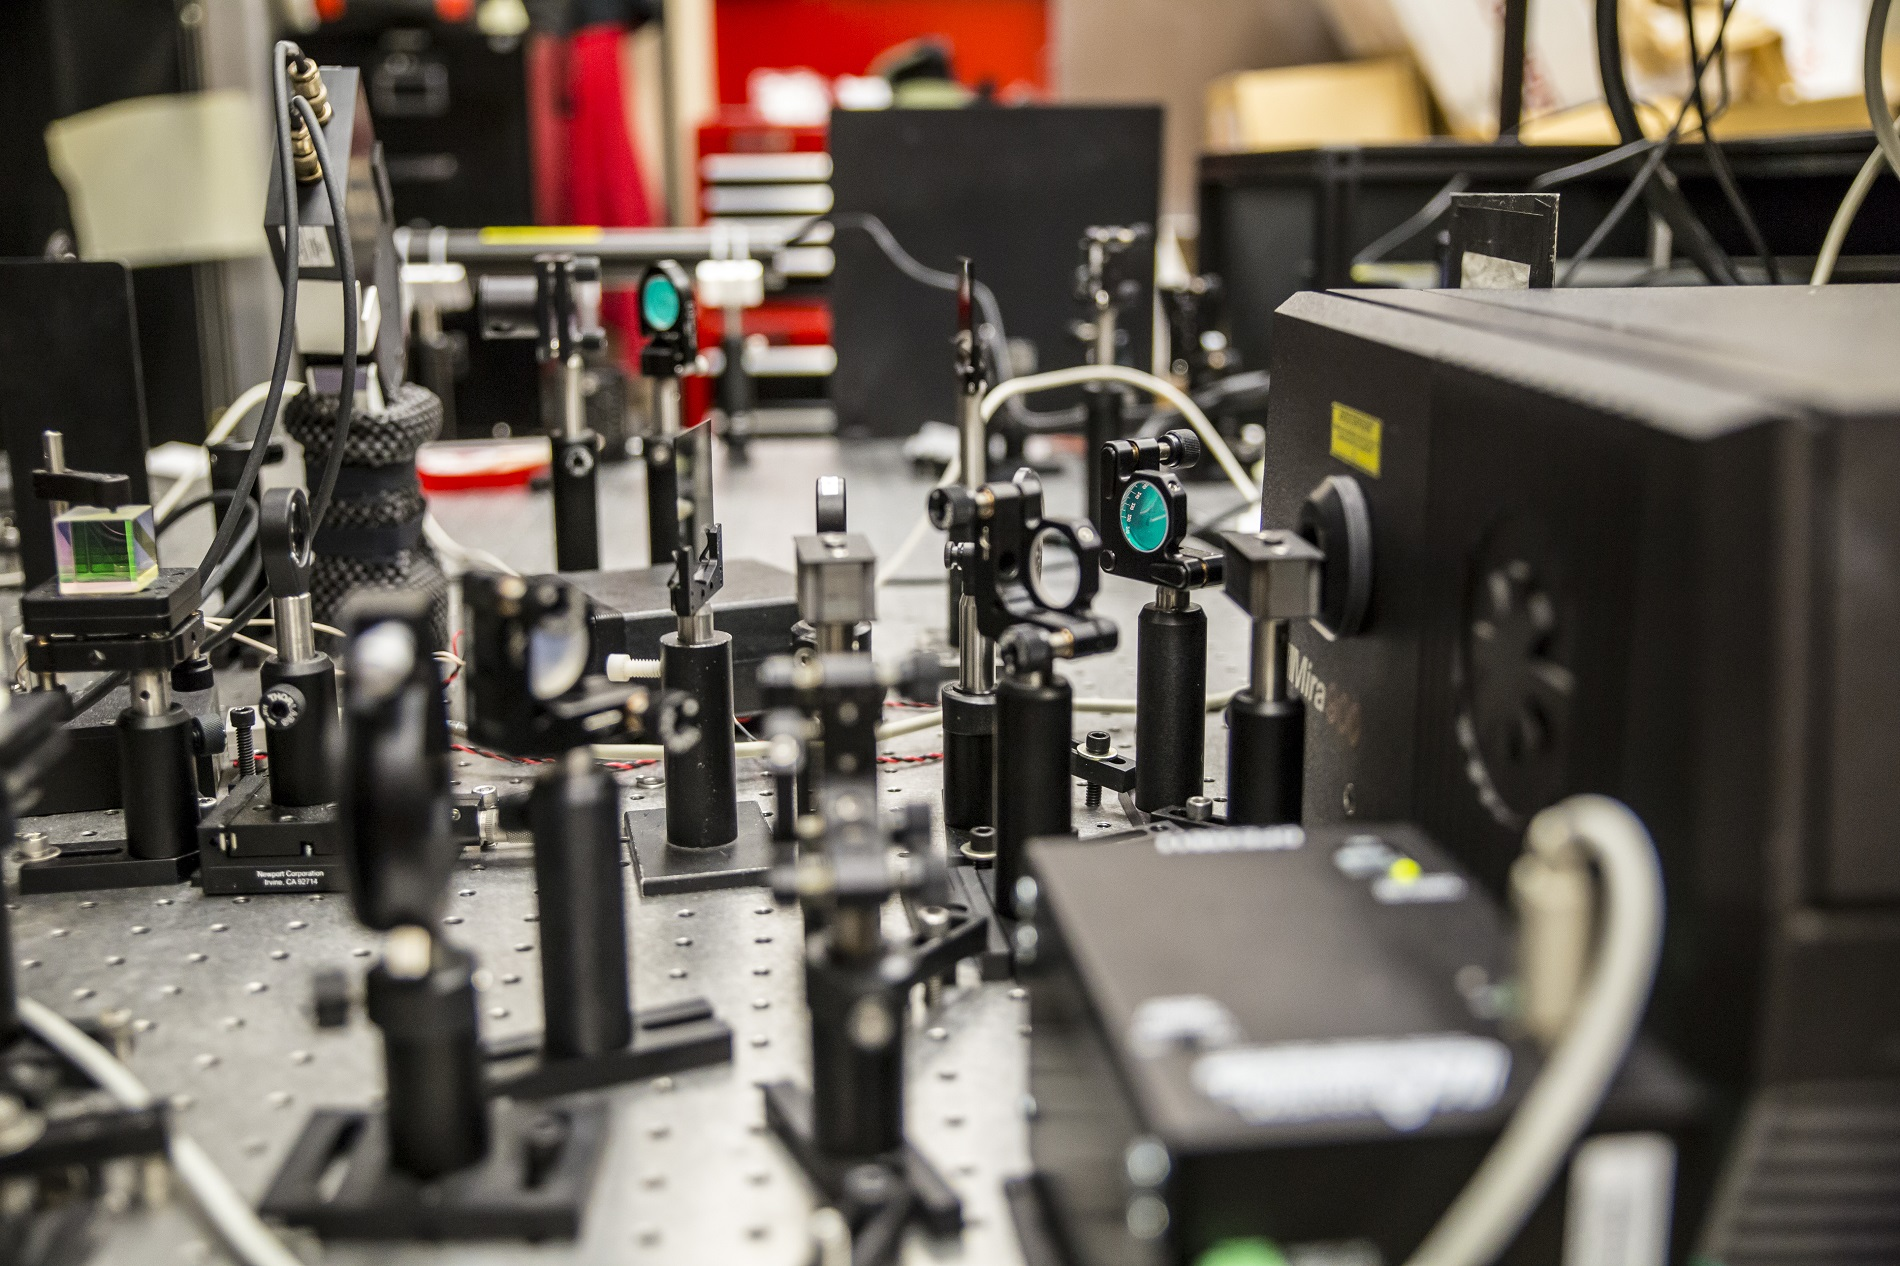 The ultrafast laser shoots very short light pulses 80 million times a second at the hybrid perovskite material to determine whether its electrons could be used to carry information in future devices